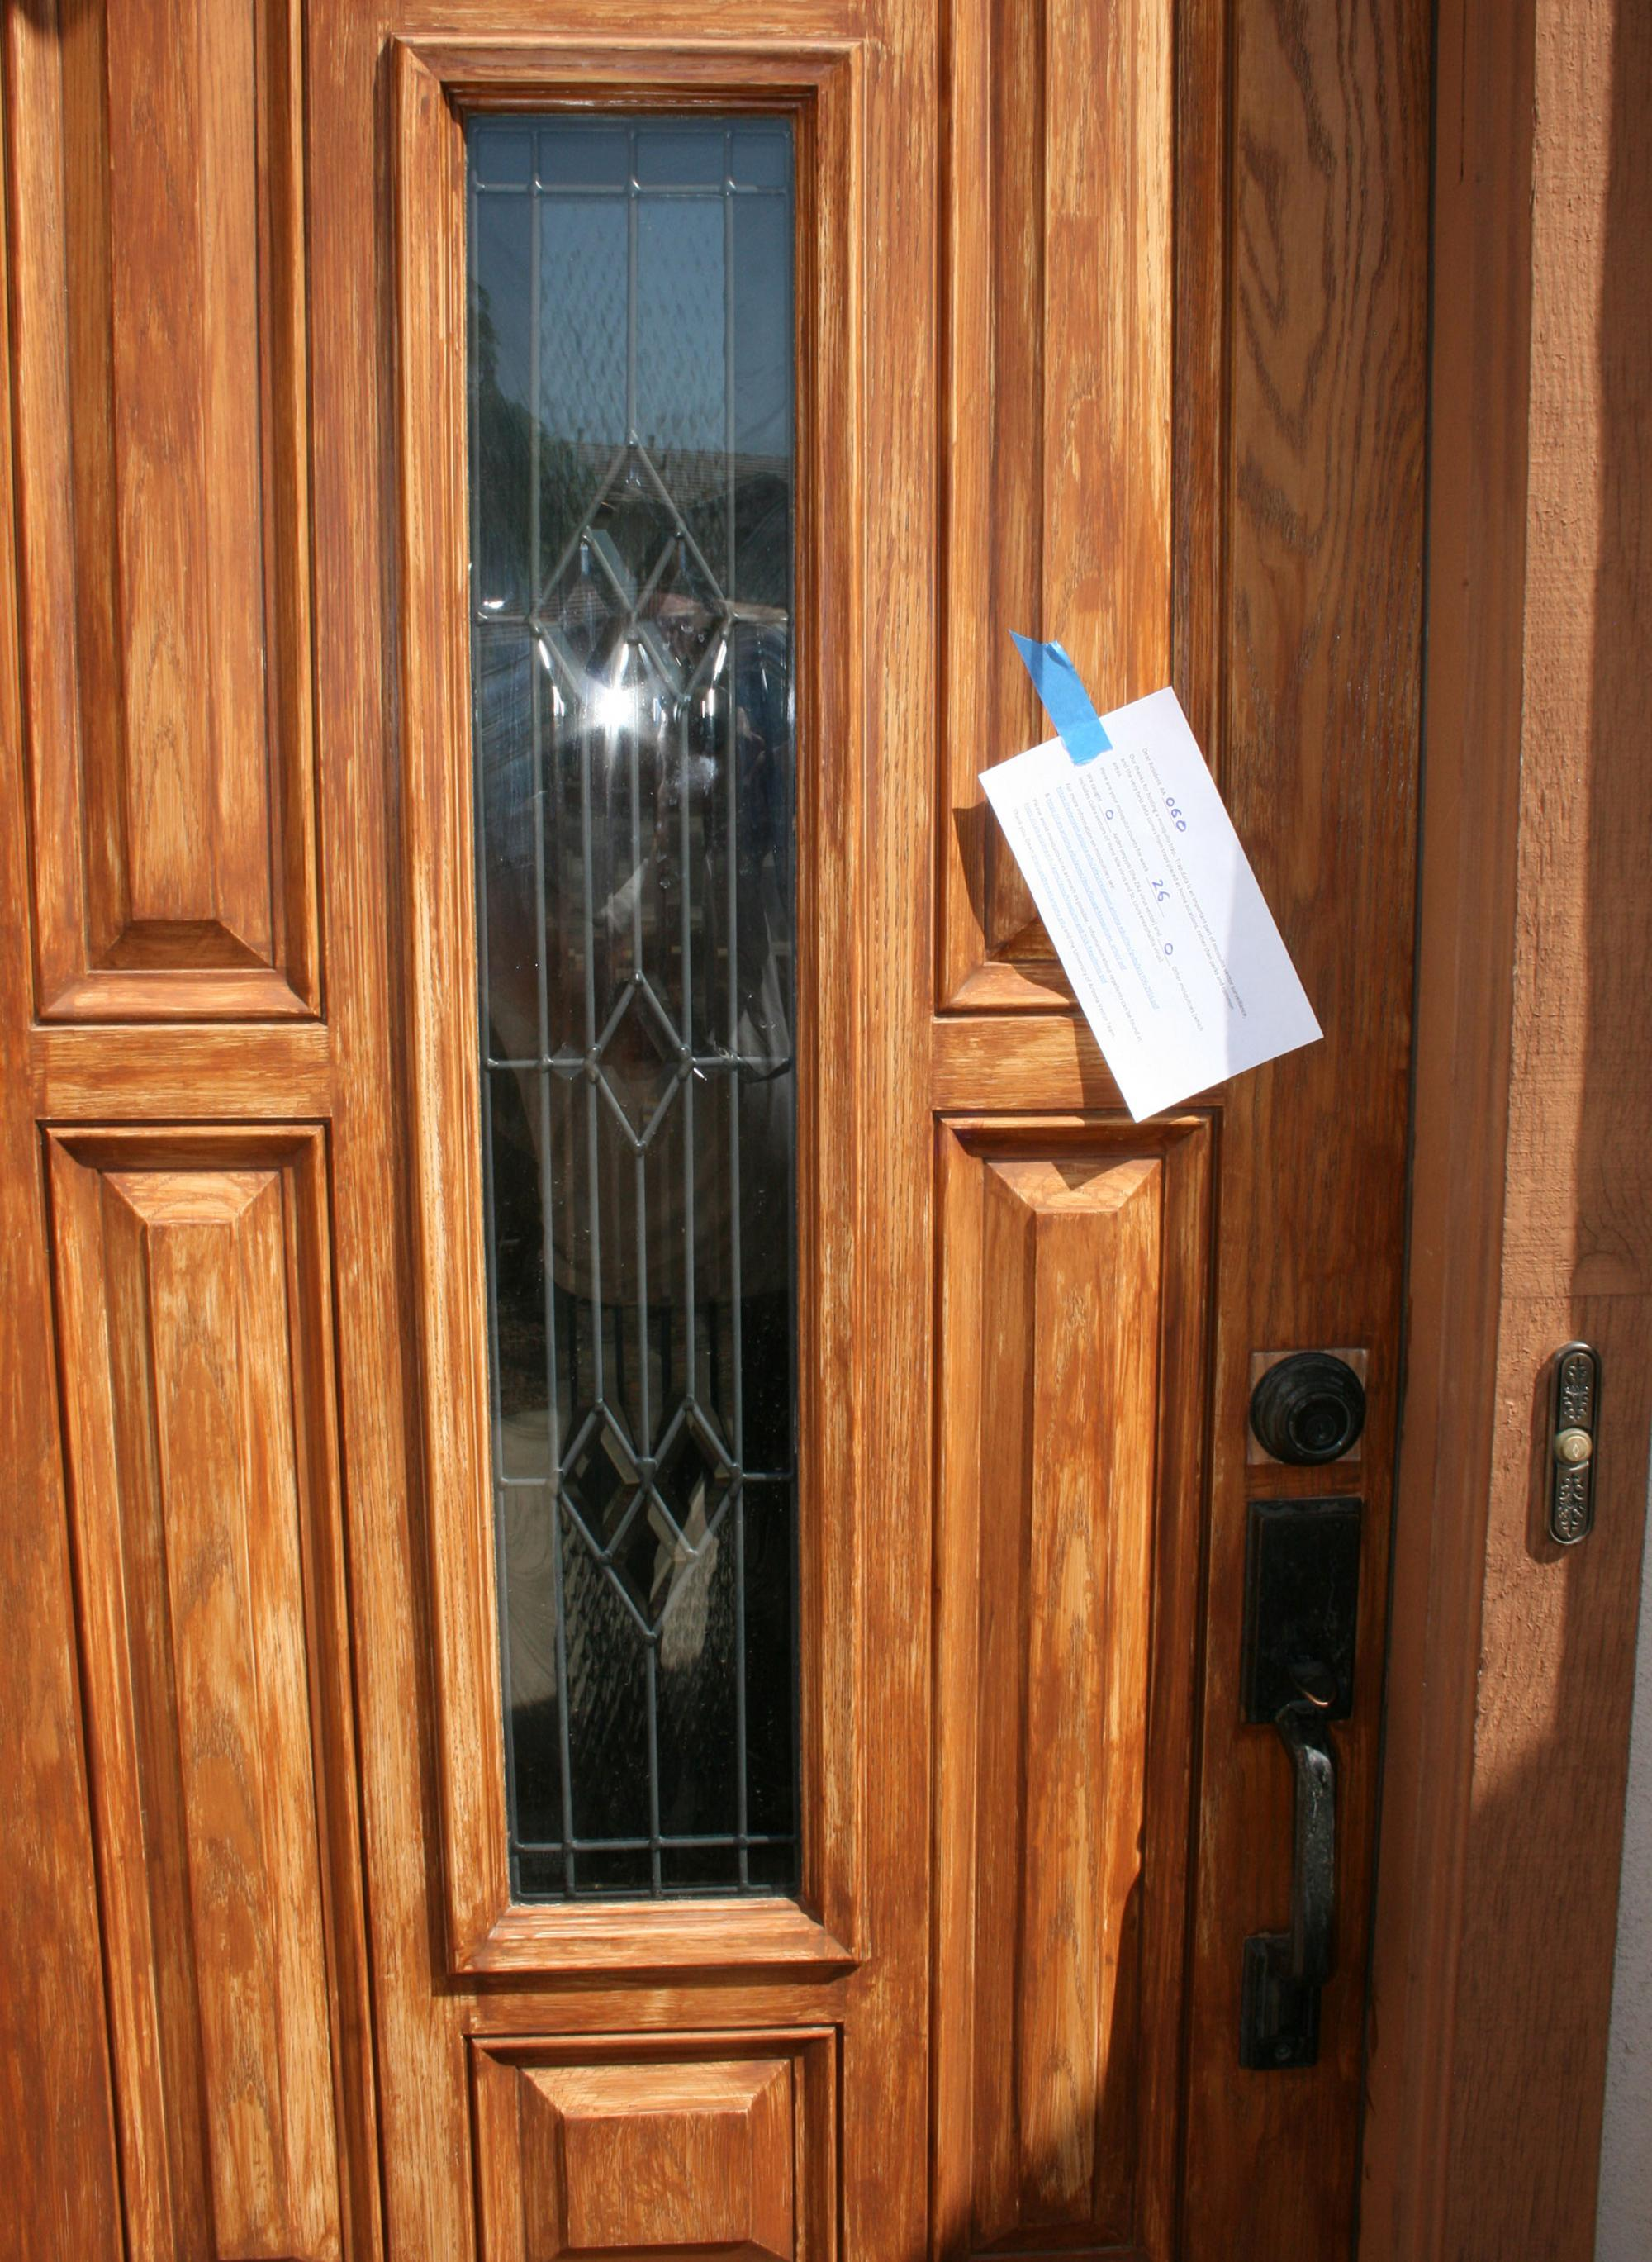 Maricopa County residents responded positively to door notices seeking volunteers to participate in the mosquito study.